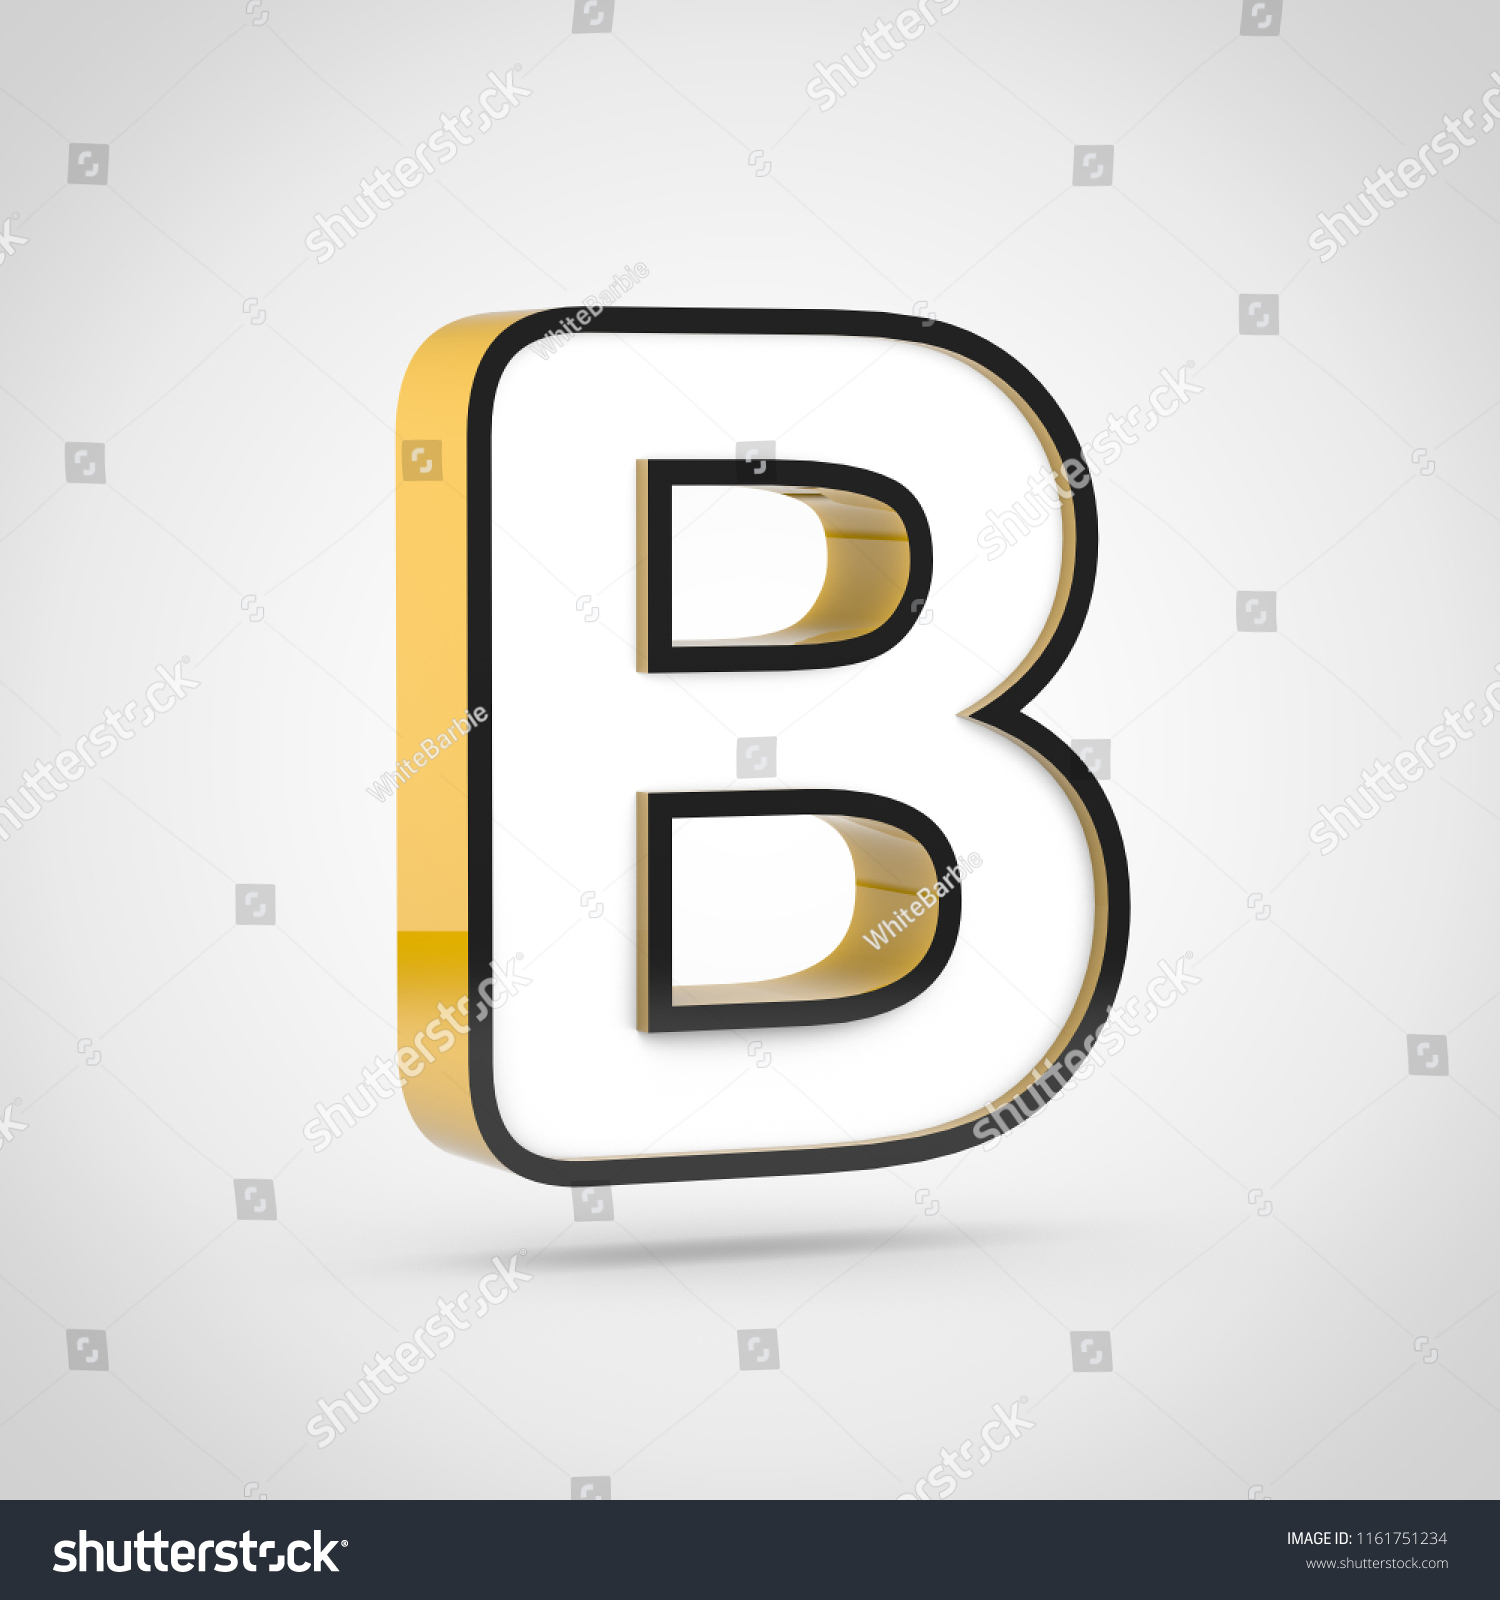 golden letter b uppercase with white face and black outline isolated on white background